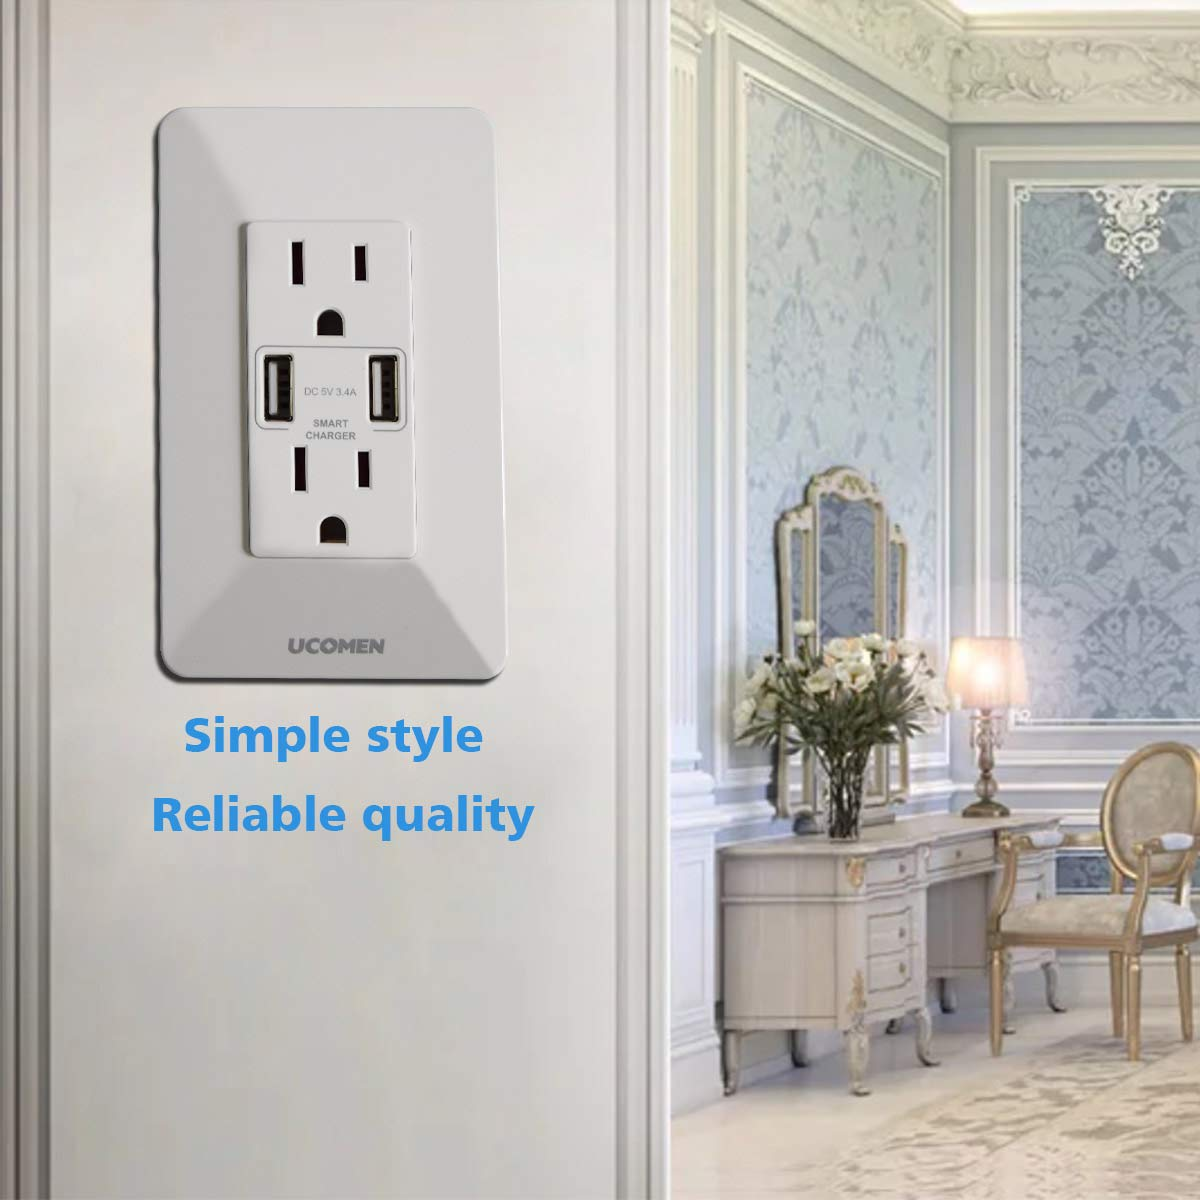 UCOMEN 2 Pack,USB Wall Outlet,USB Outlets,High Speed USB Wall Charger Outlet,Resistant Receptacle,USB Charger Outlet,Dual USB Charger with 15A Tamper Resistant Duplex Receptacle,White KEMAN